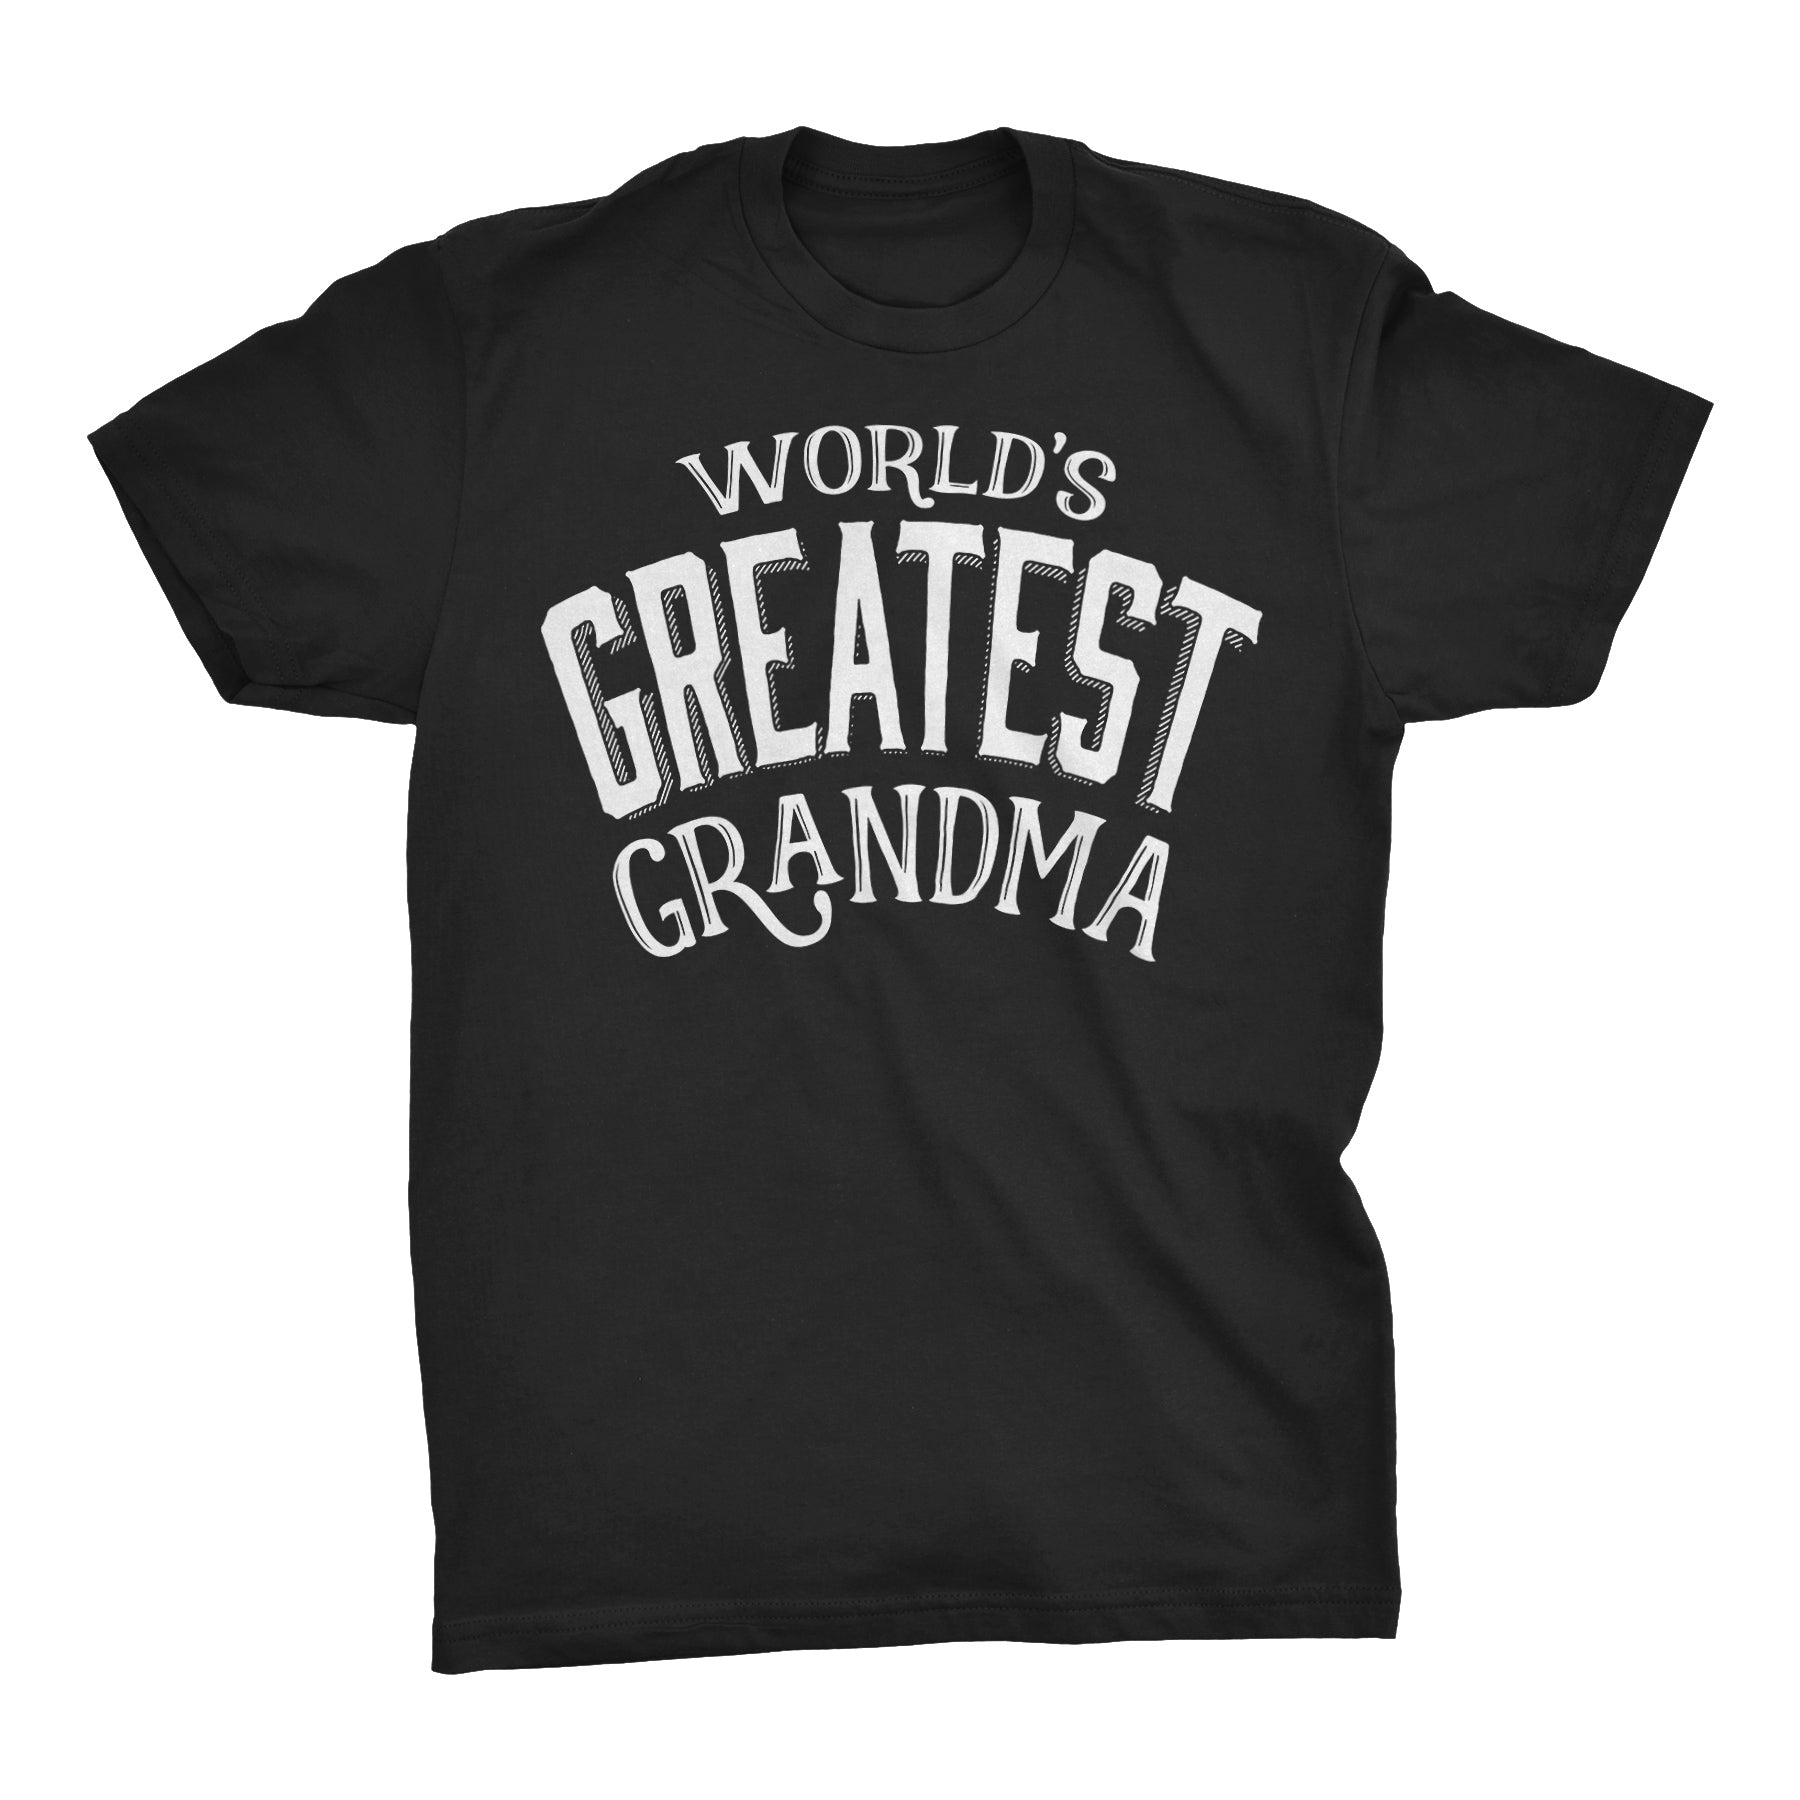 World's Greatest GRANDMA - 001 Mother's Day Grandmother Ladies Fit T-shirt